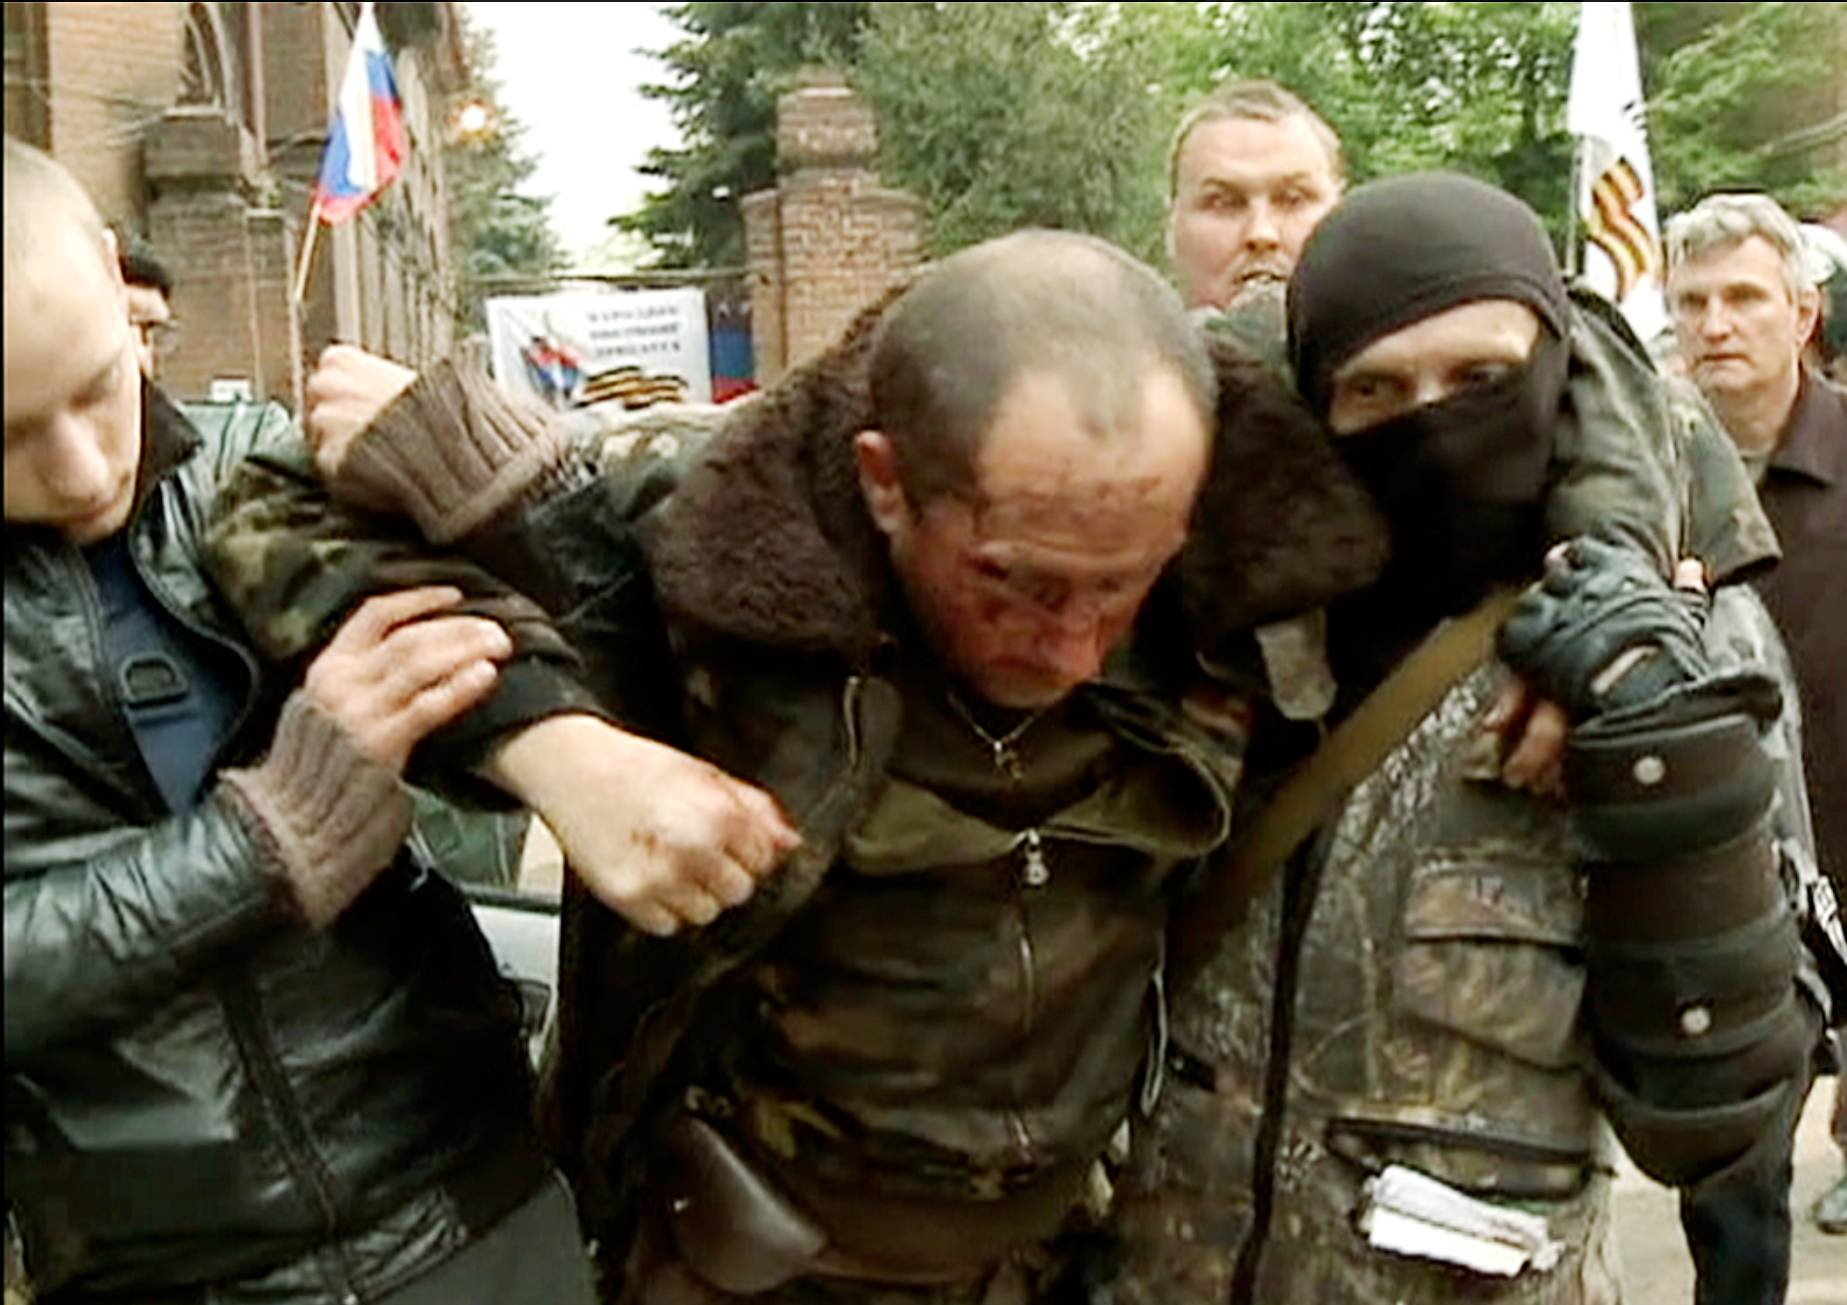 An injured Ukrainian military helicopter pilot is assisted by pro-Russian activists after he was shot down in Slovyansk, eastern Ukraine, Friday May 2, 2014. Pro-Russia forces shot down two Ukrainian helicopters Friday as Ukraine launched its first major offensive against an insurgency that has seized government buildings in the east.